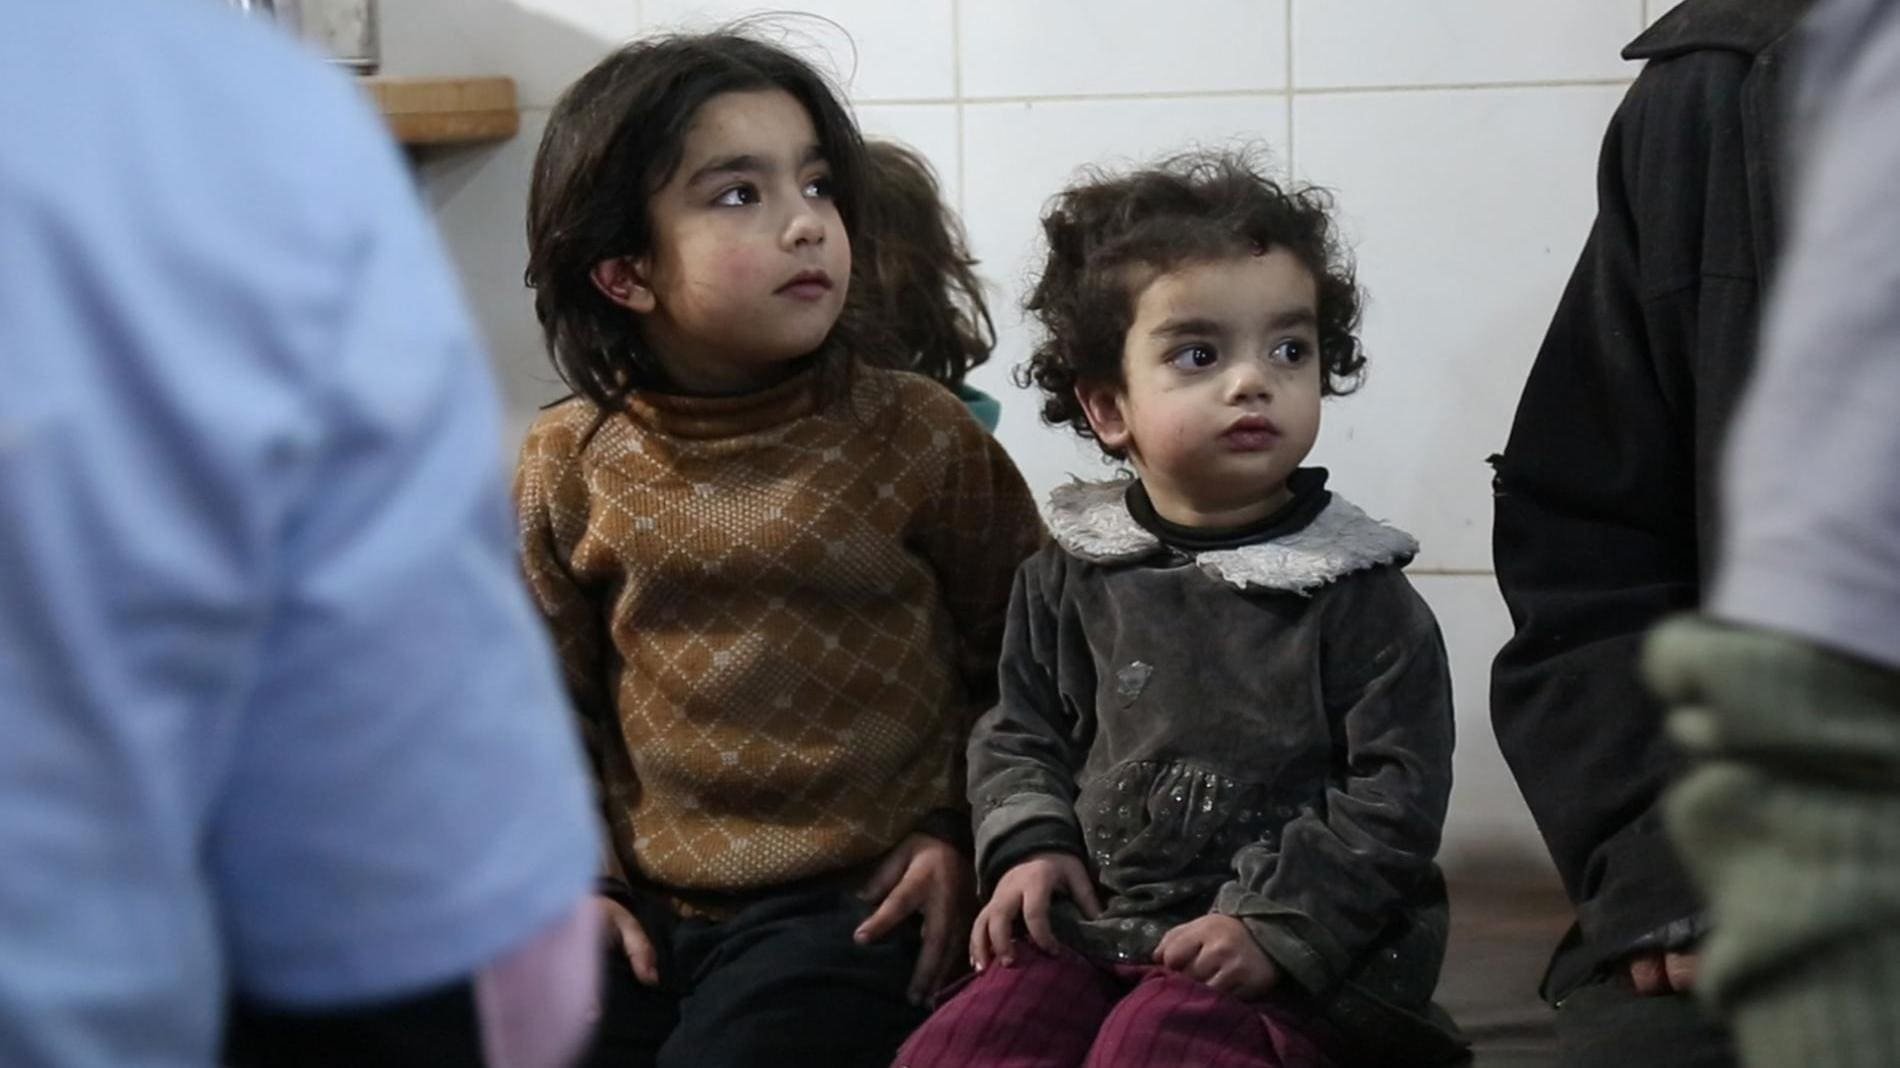 Al Ghouta, Syria - Children waiting for treatment in the underground hospital. (Photo by National Geographic)